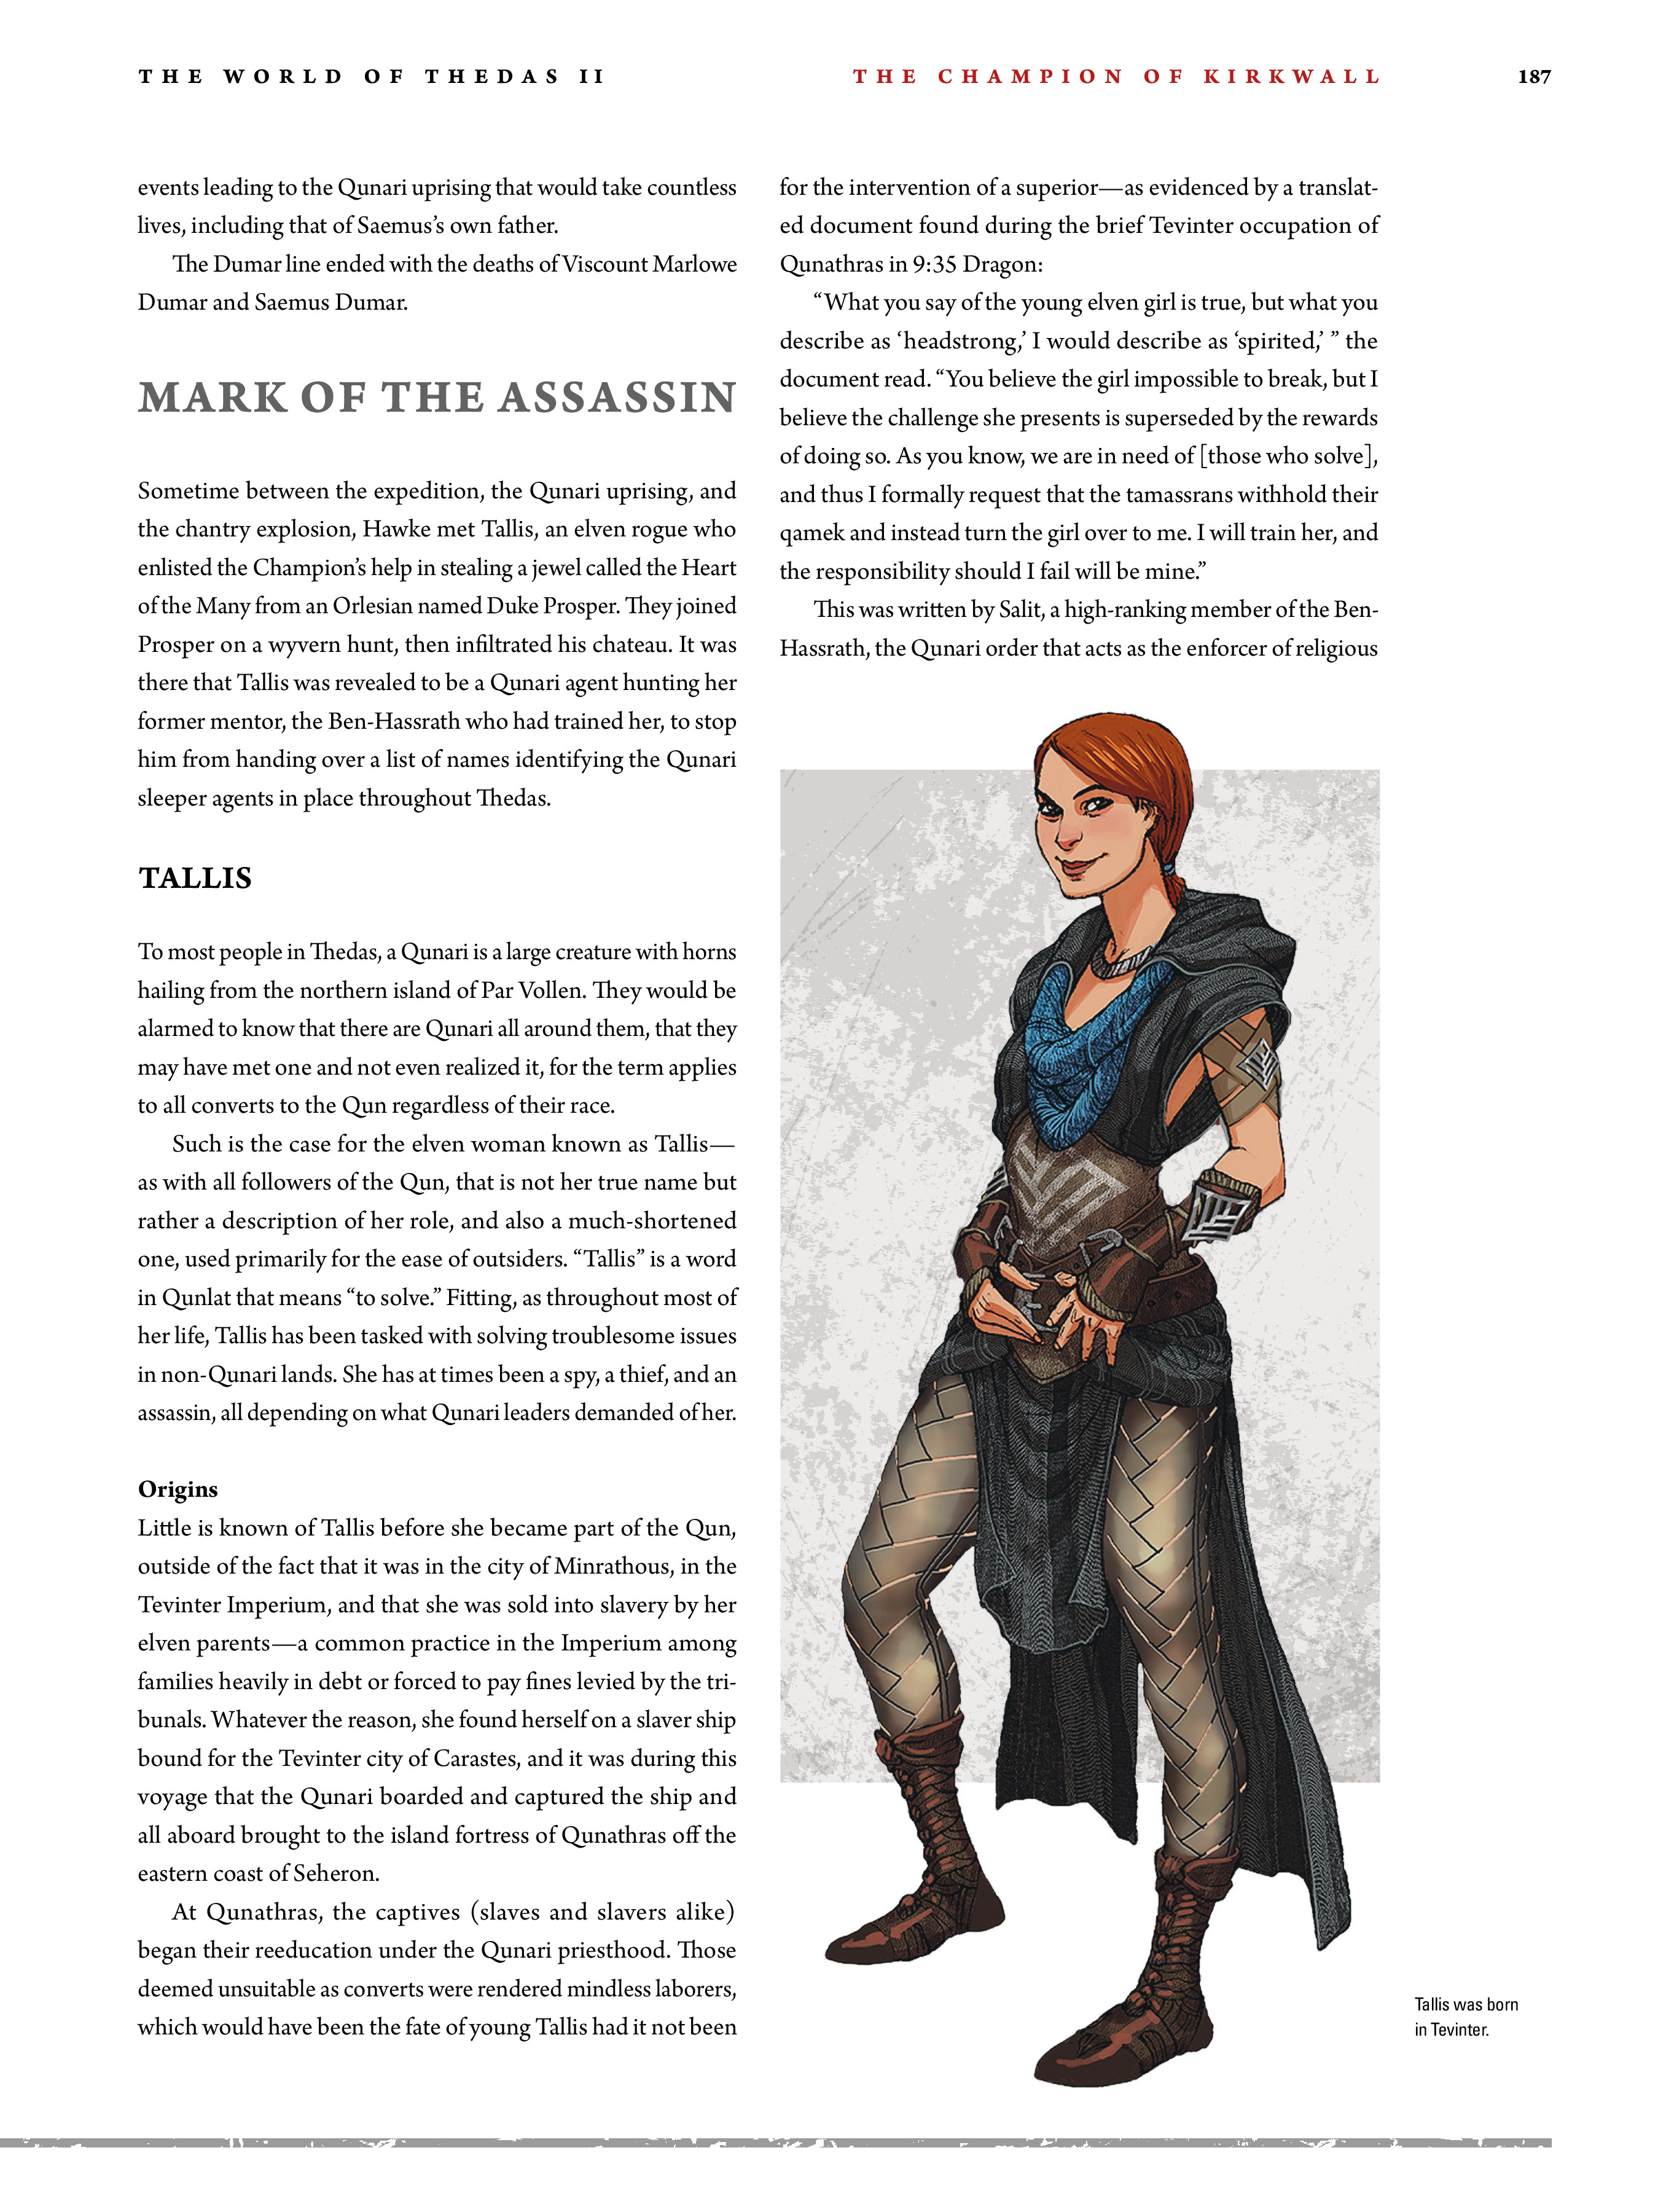 Read online Dragon Age: The World of Thedas comic -  Issue # TPB 2 - 182